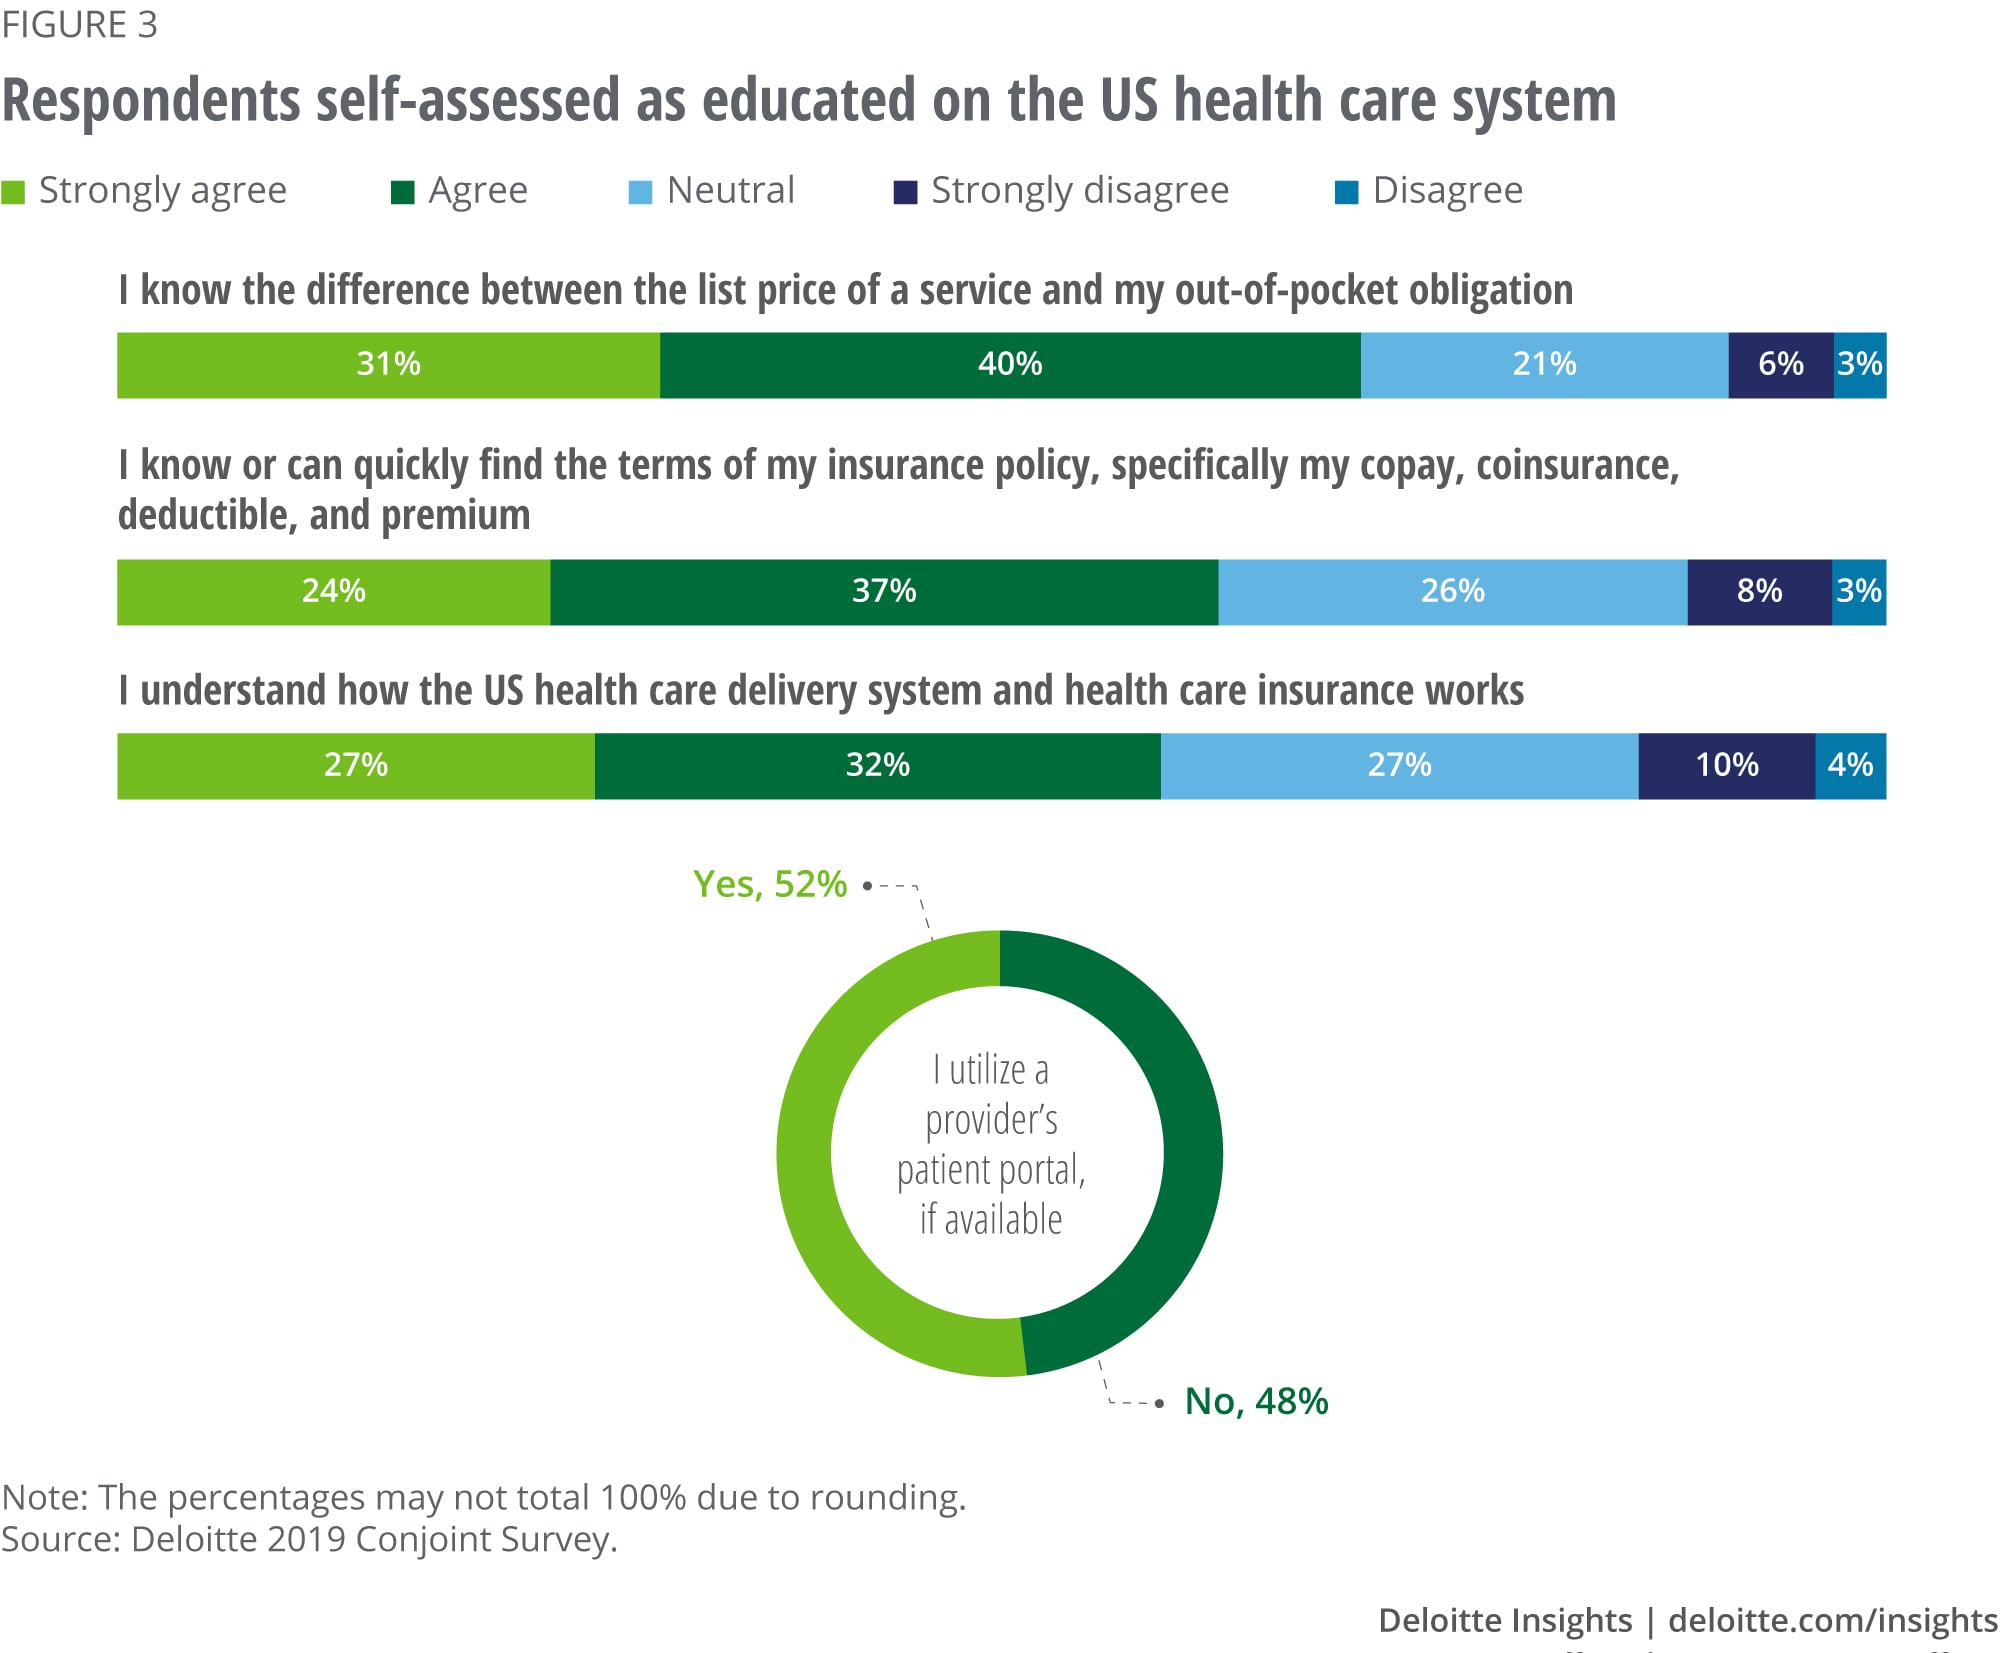 Respondents self-assessed as educated on the US health care system